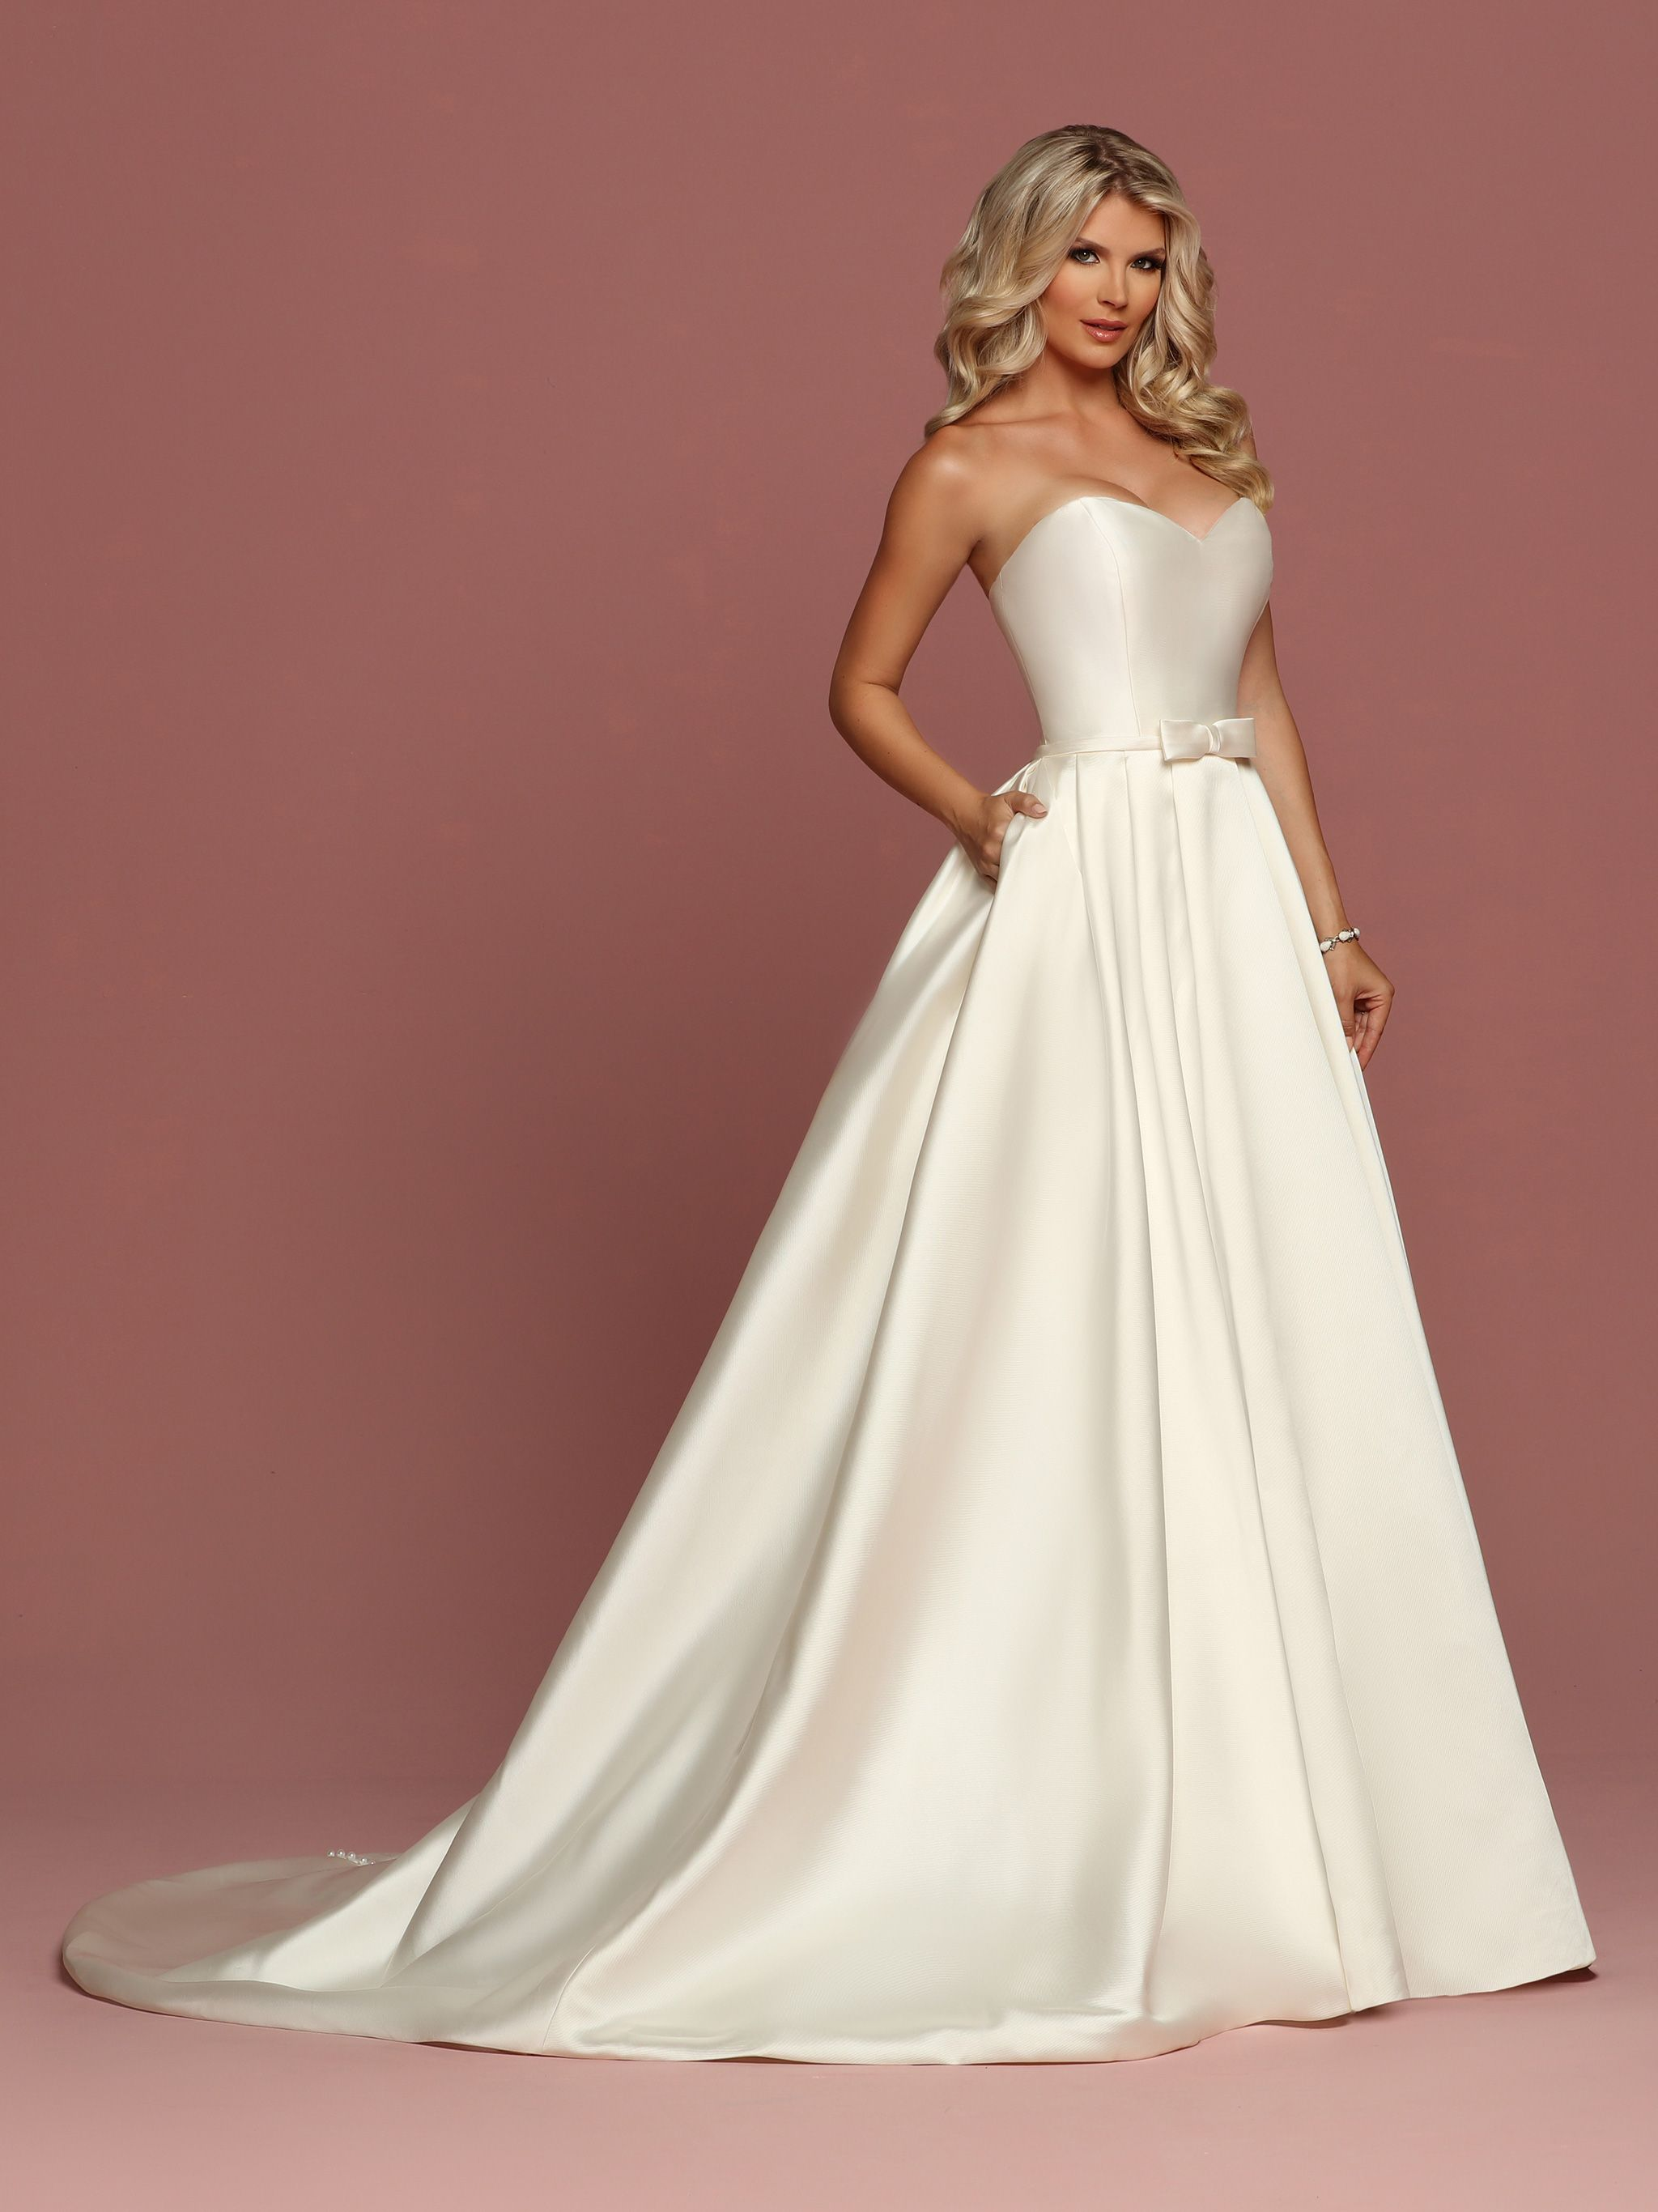 Davinci Bridal Is Your Ultimate Destination For Bridesmaid Dresses Designer Wedding Gowns And Best Online